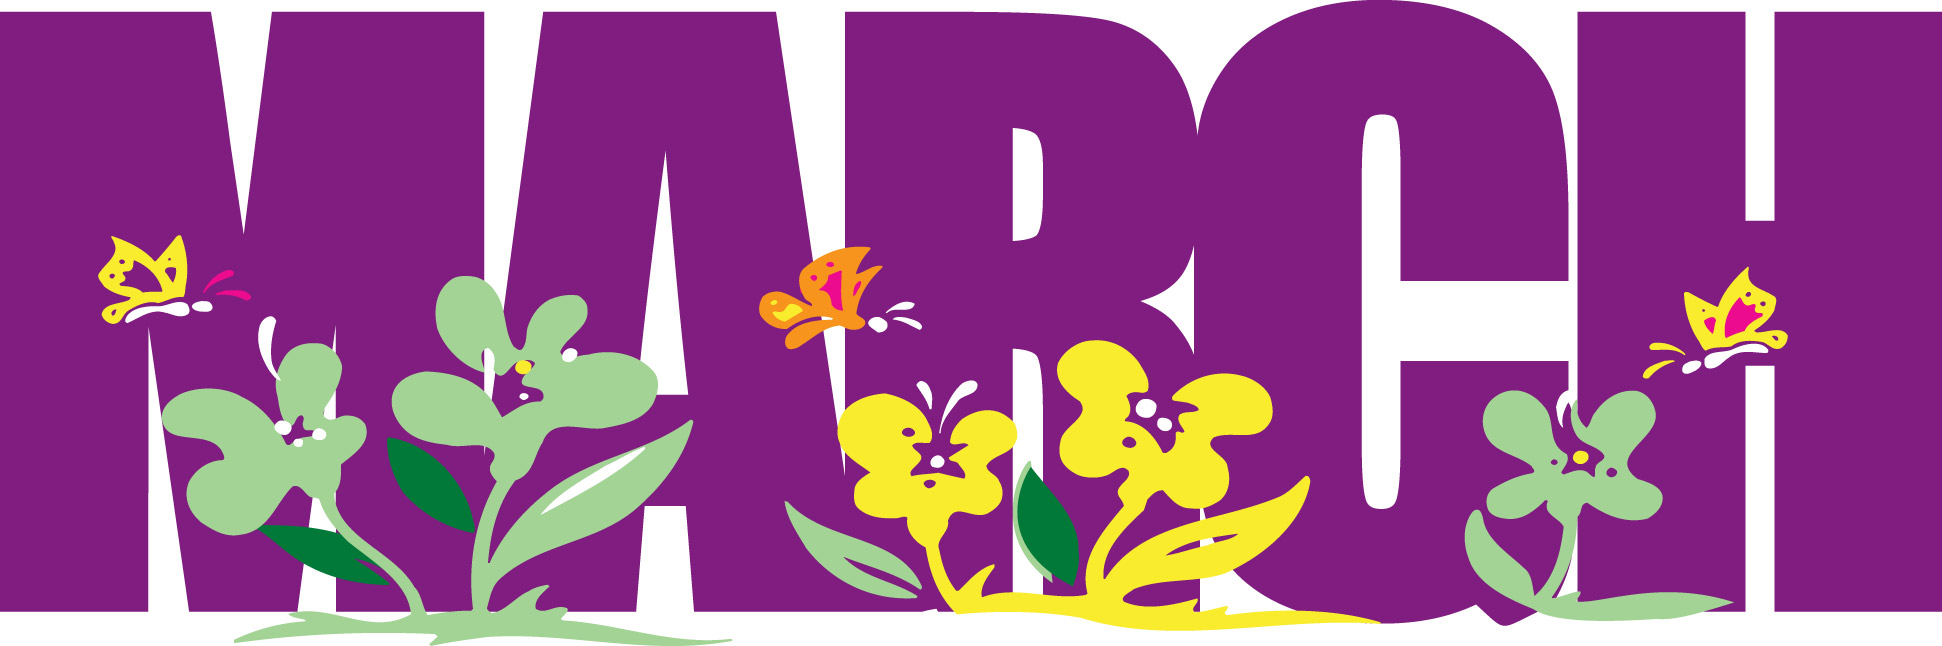 March Month PNG Transparent March Month.PNG Images..